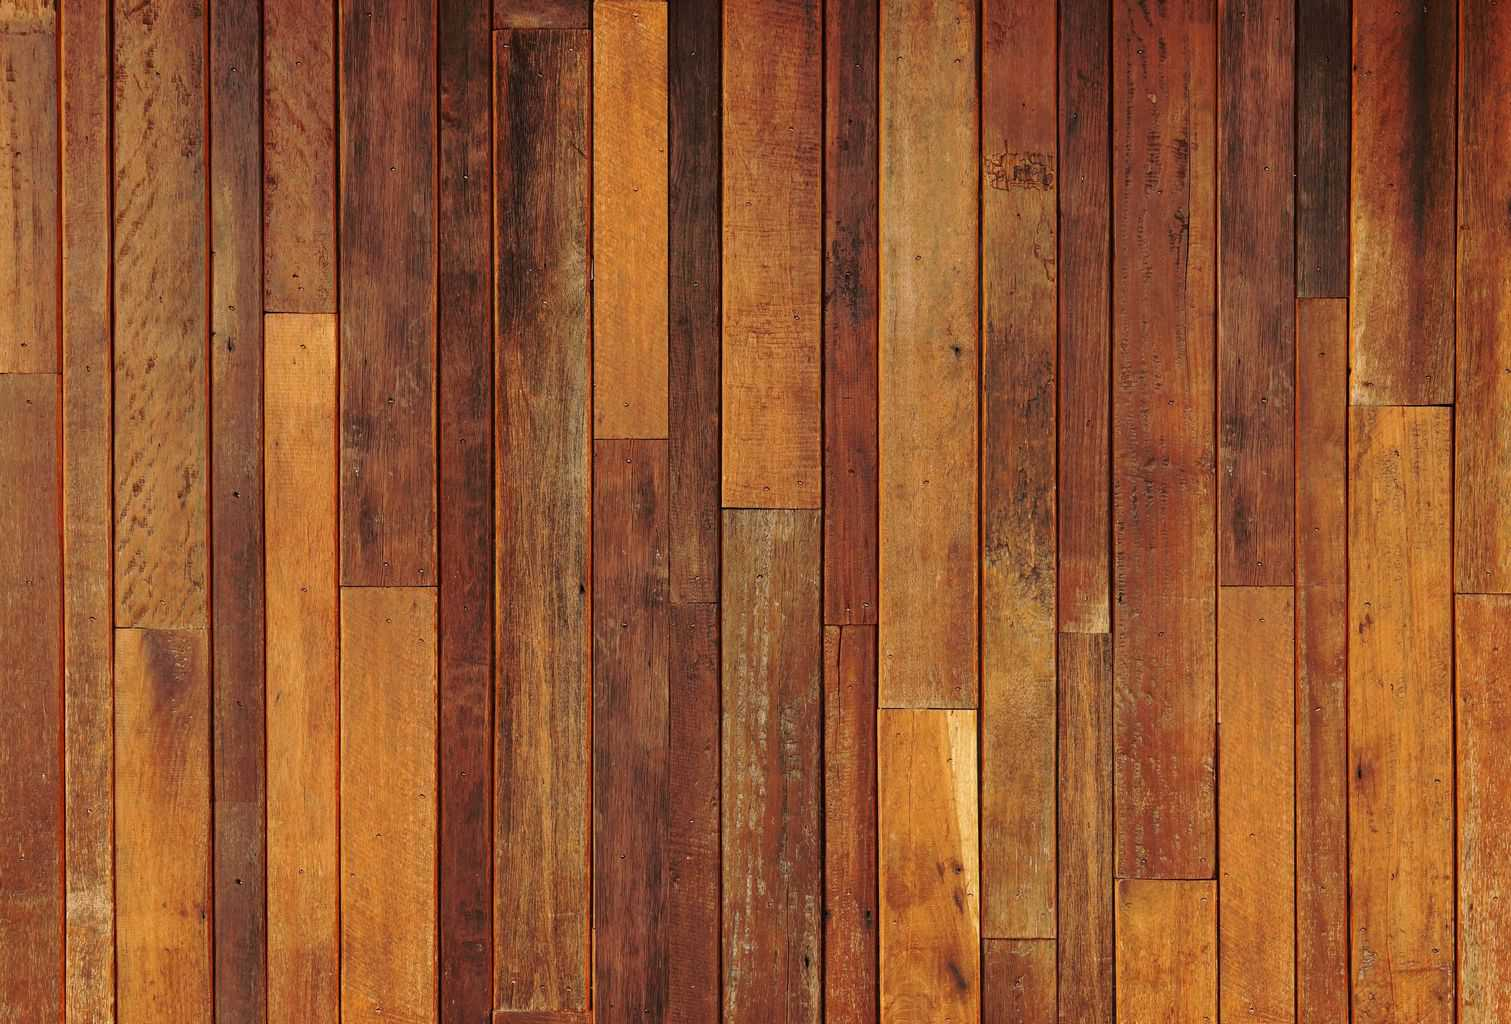 Engineered Hardwood Designs For Your Floor The Flooring Lady